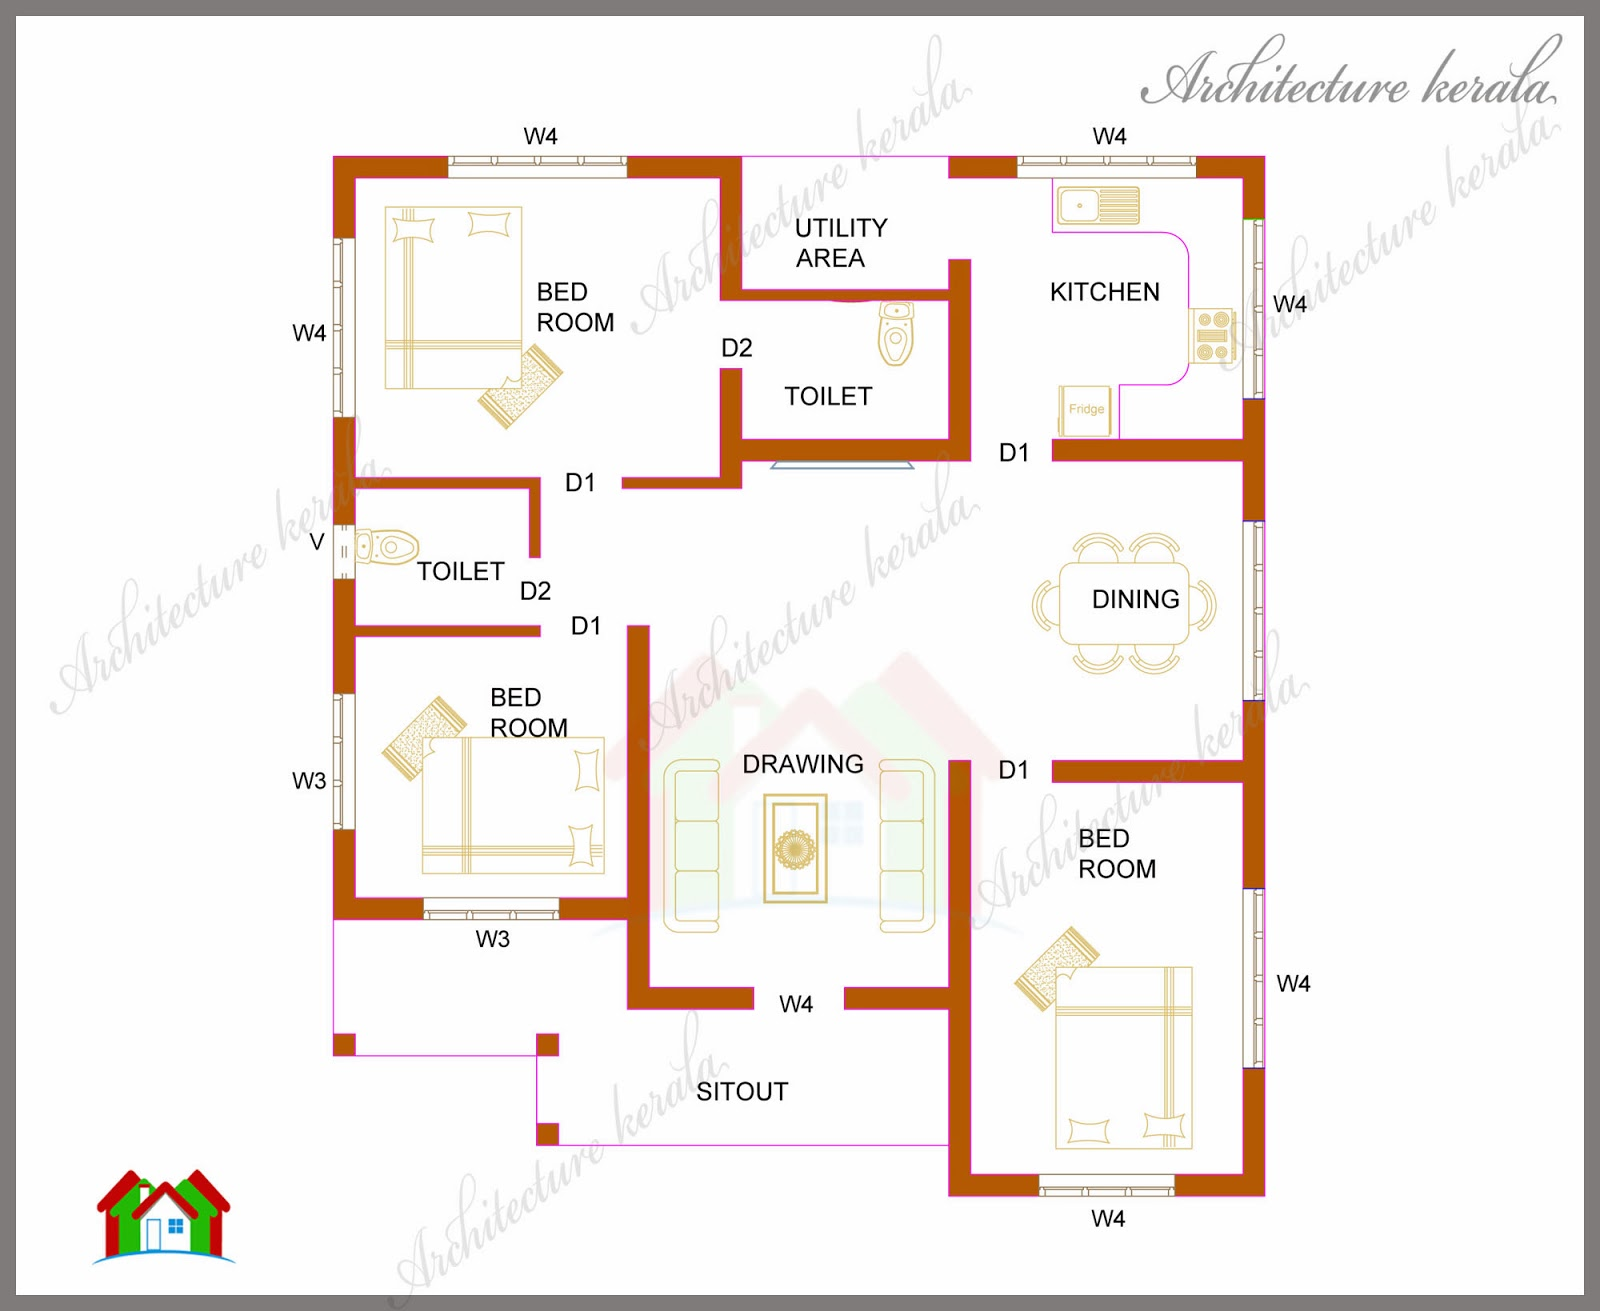 Three bedrooms in 1200 square feet kerala house plan for 3 bedroom house plans indian style